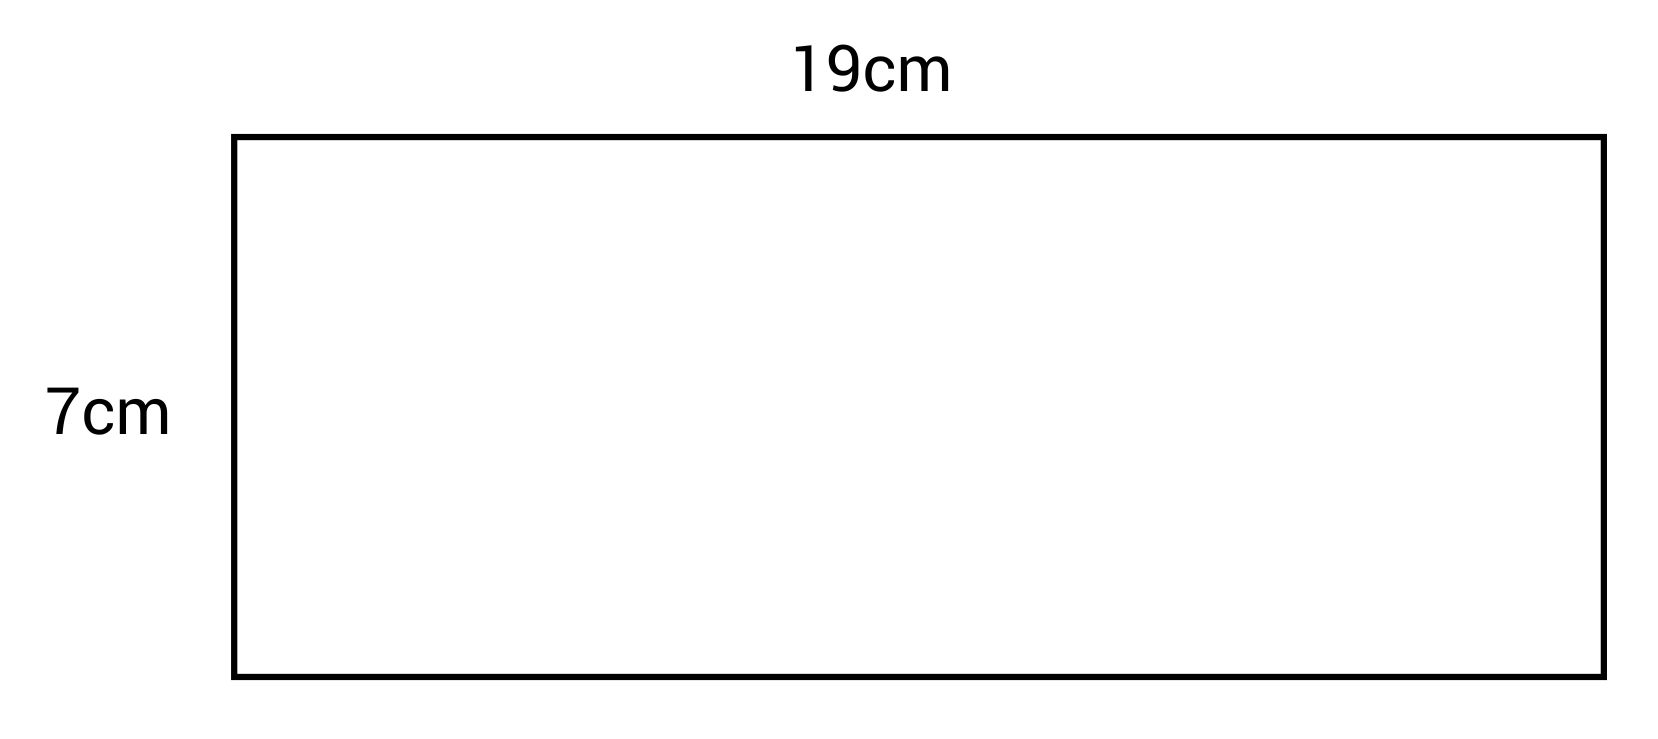 19 by 7cm rectangle